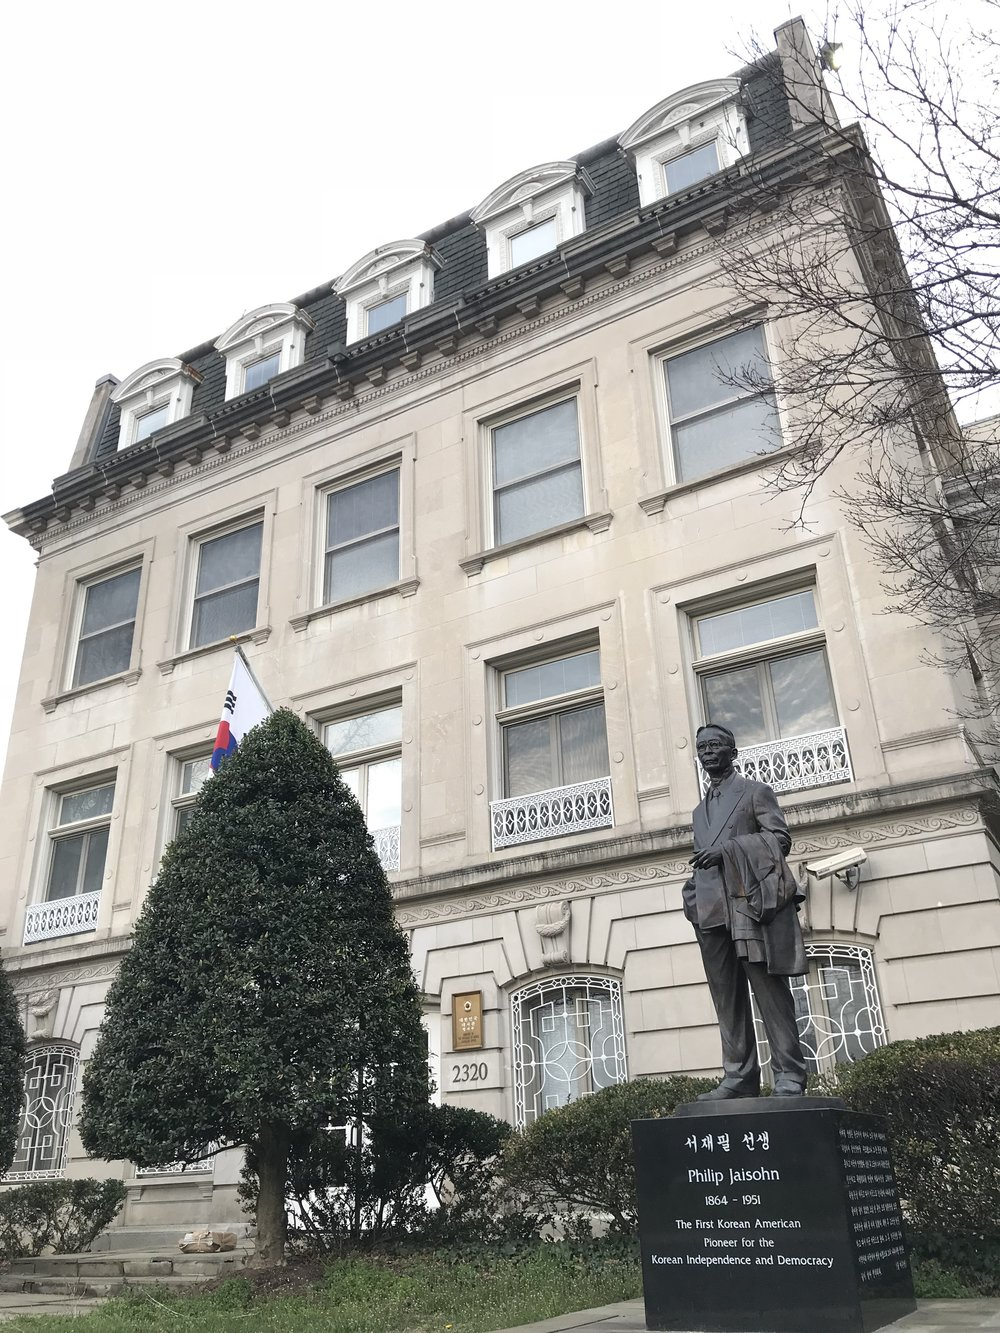 The Consular Section of the Embassy of South Korea.